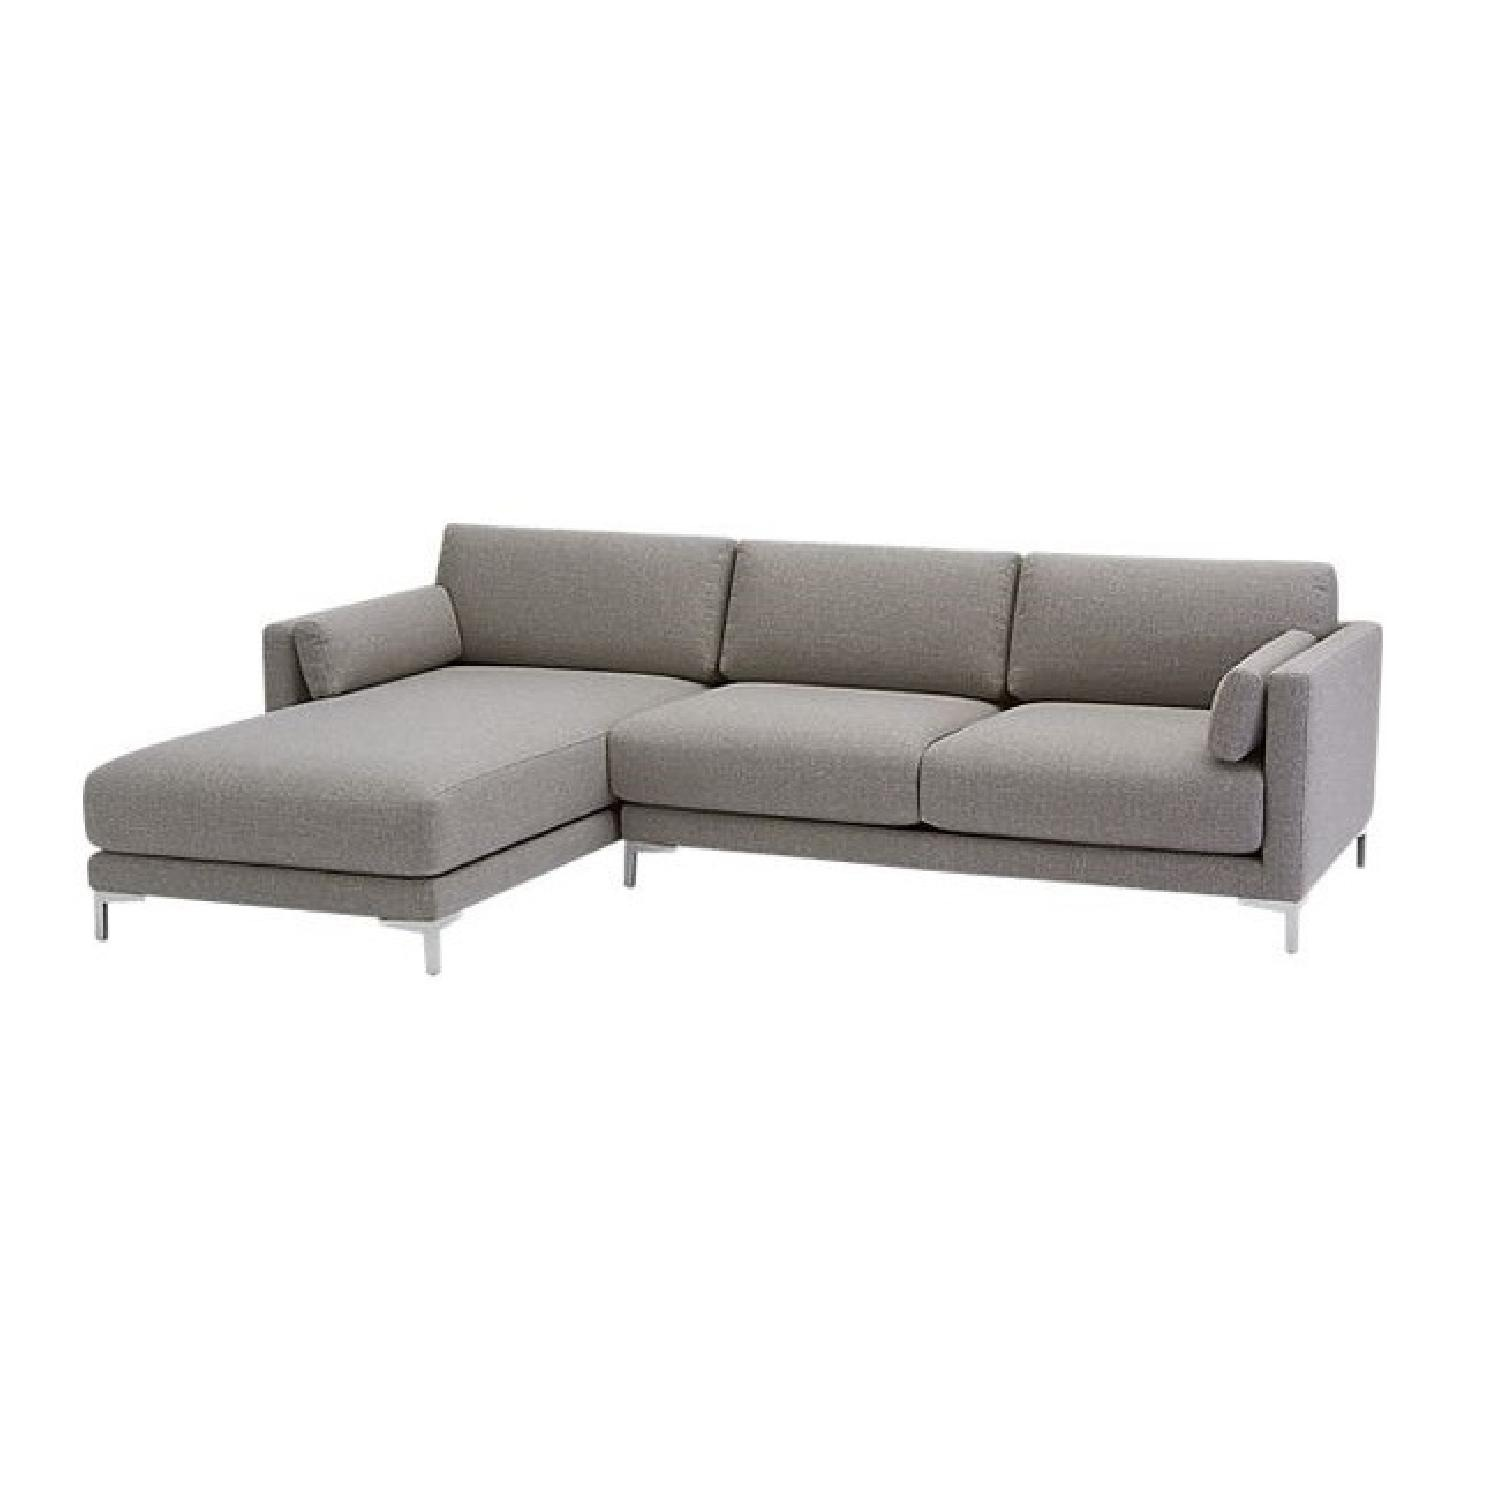 CB2 District 2-Piece Sectional Sofa - image-1